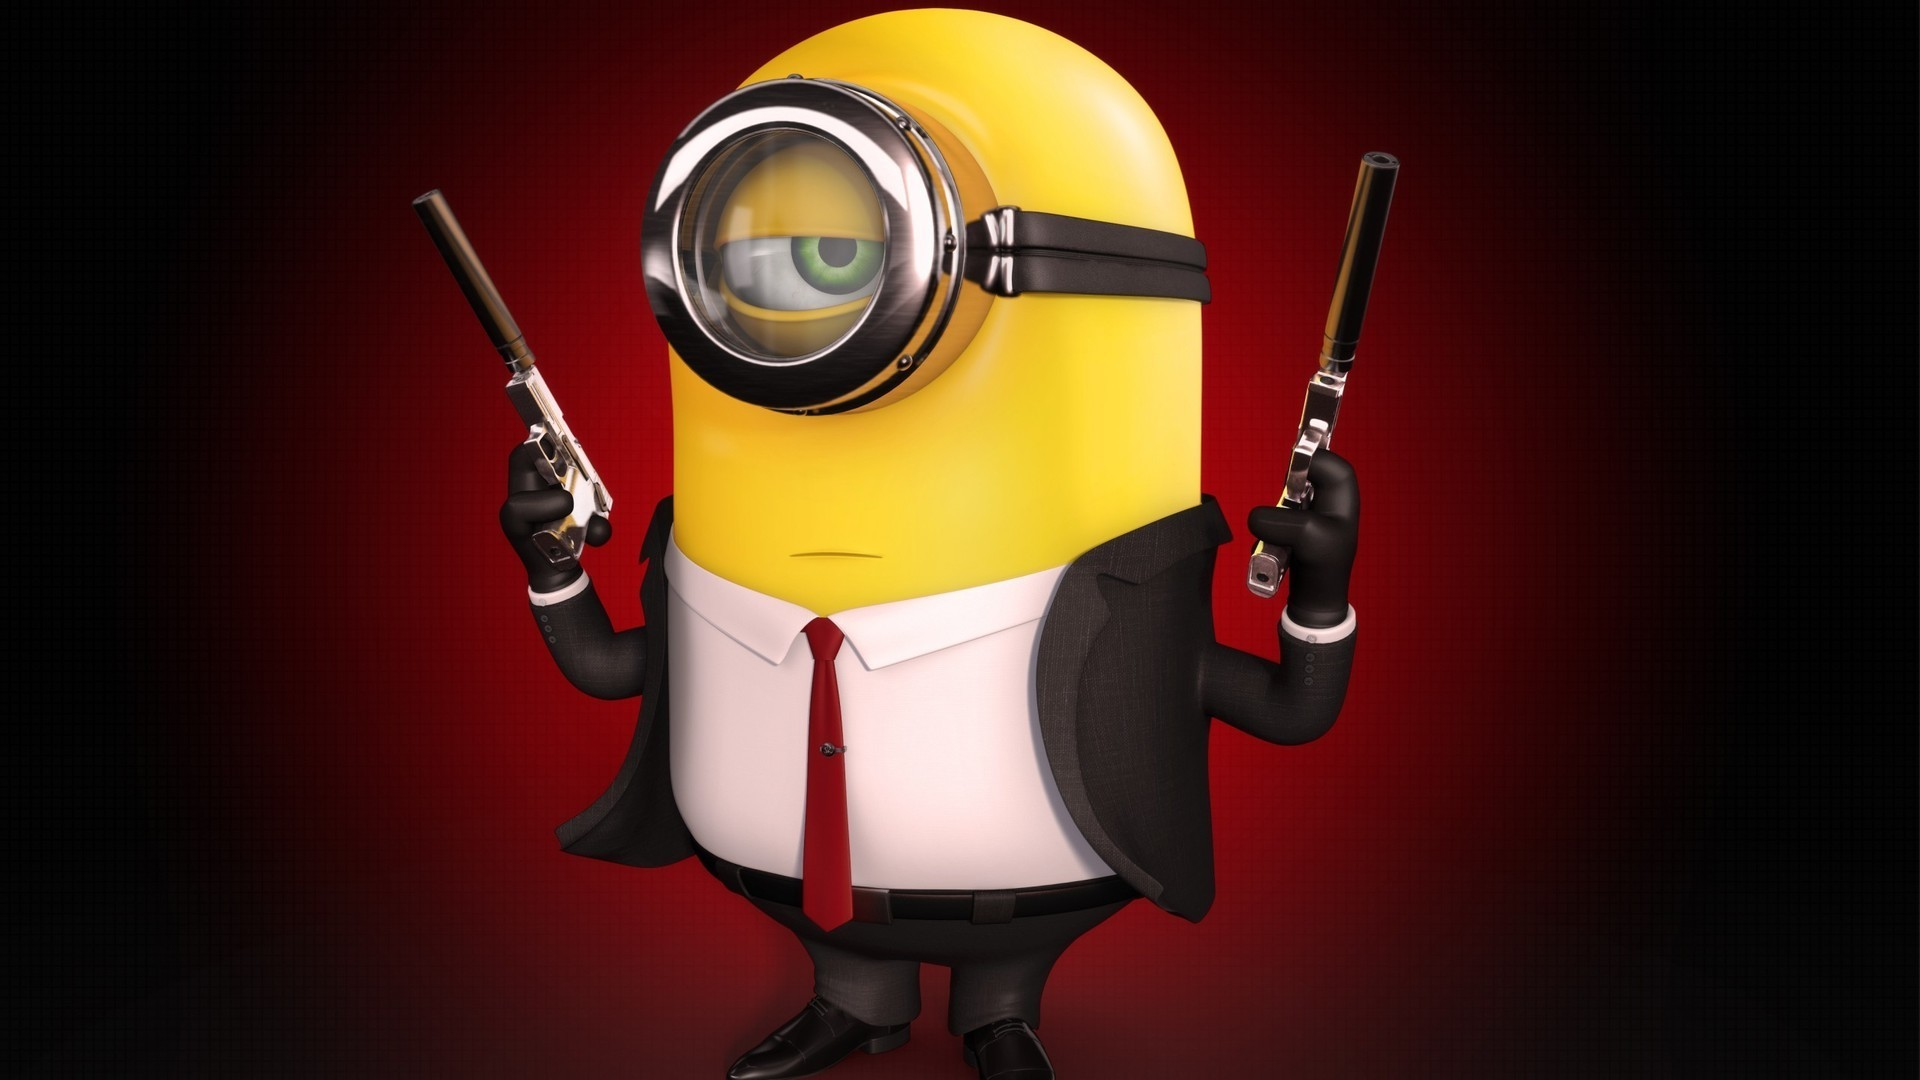 Minions Hd Wallpapers – image #793085